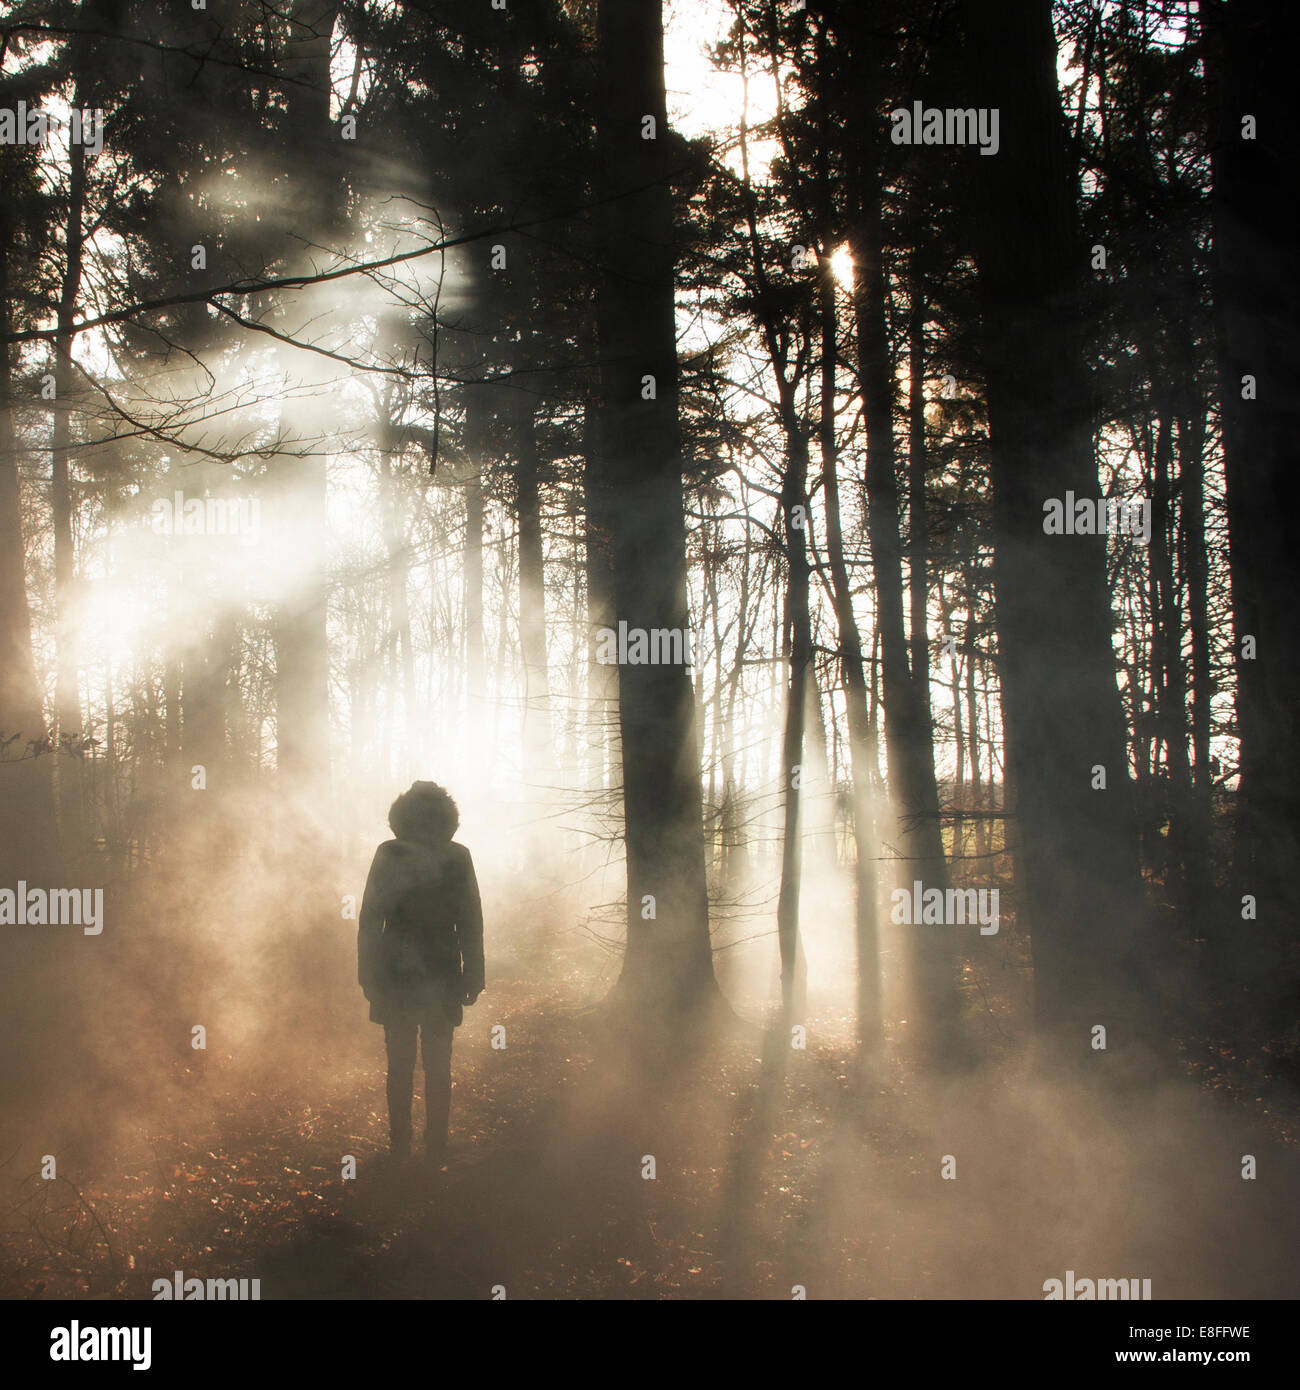 Silhouette of a woman in woods - Stock Image